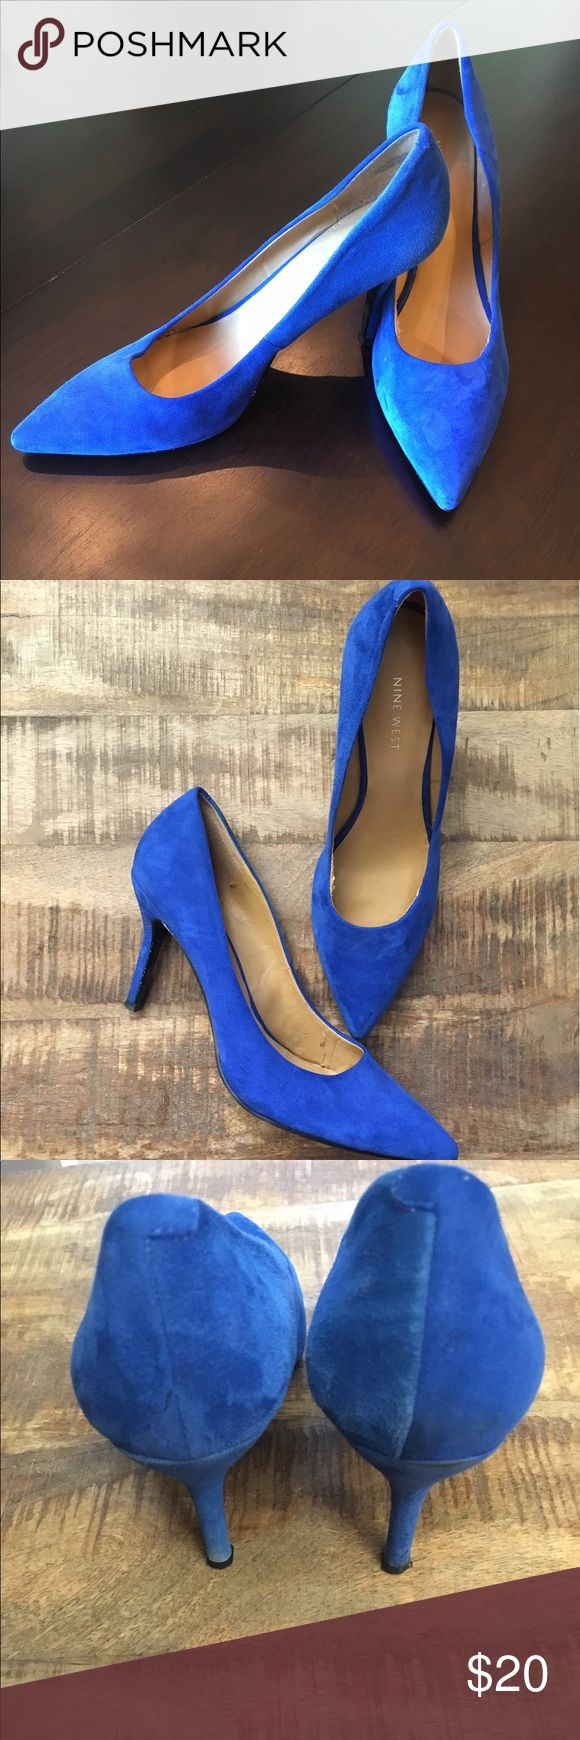 Nine West Flax High Heel in Dark Blue Gorgeous blue! Pointy toe high heel. Minor wear on one heel and interior (pictured). Worn less than 6 times. Suede like leather upper. Nine West Shoes Heels